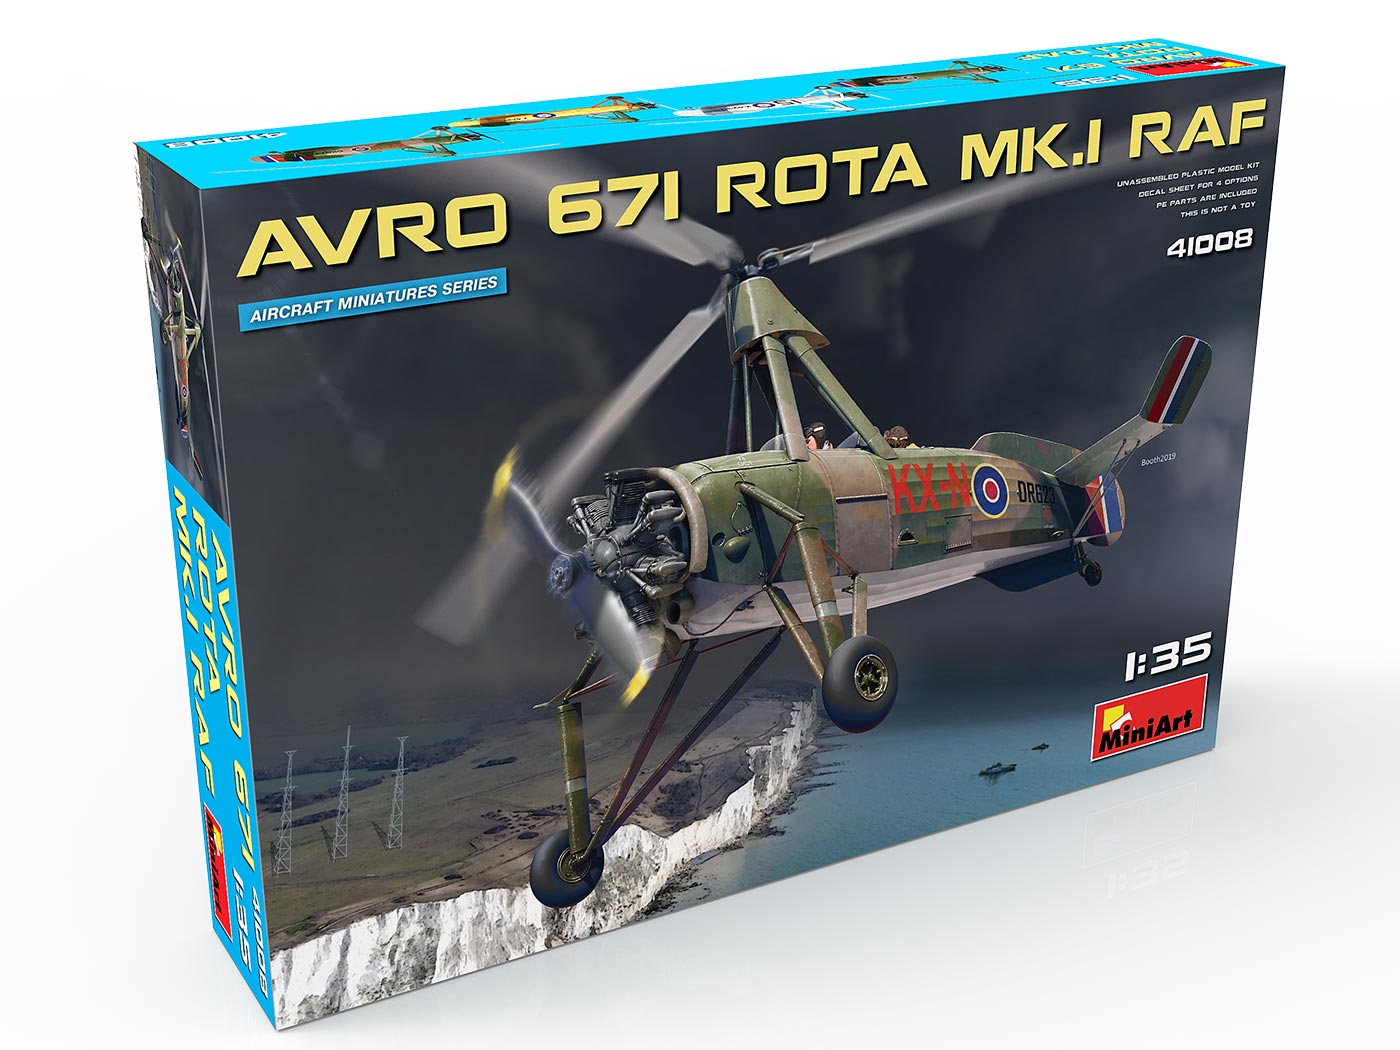 New Photos of Kit: 41008 AVRO 671 ROTA MK.I RAF